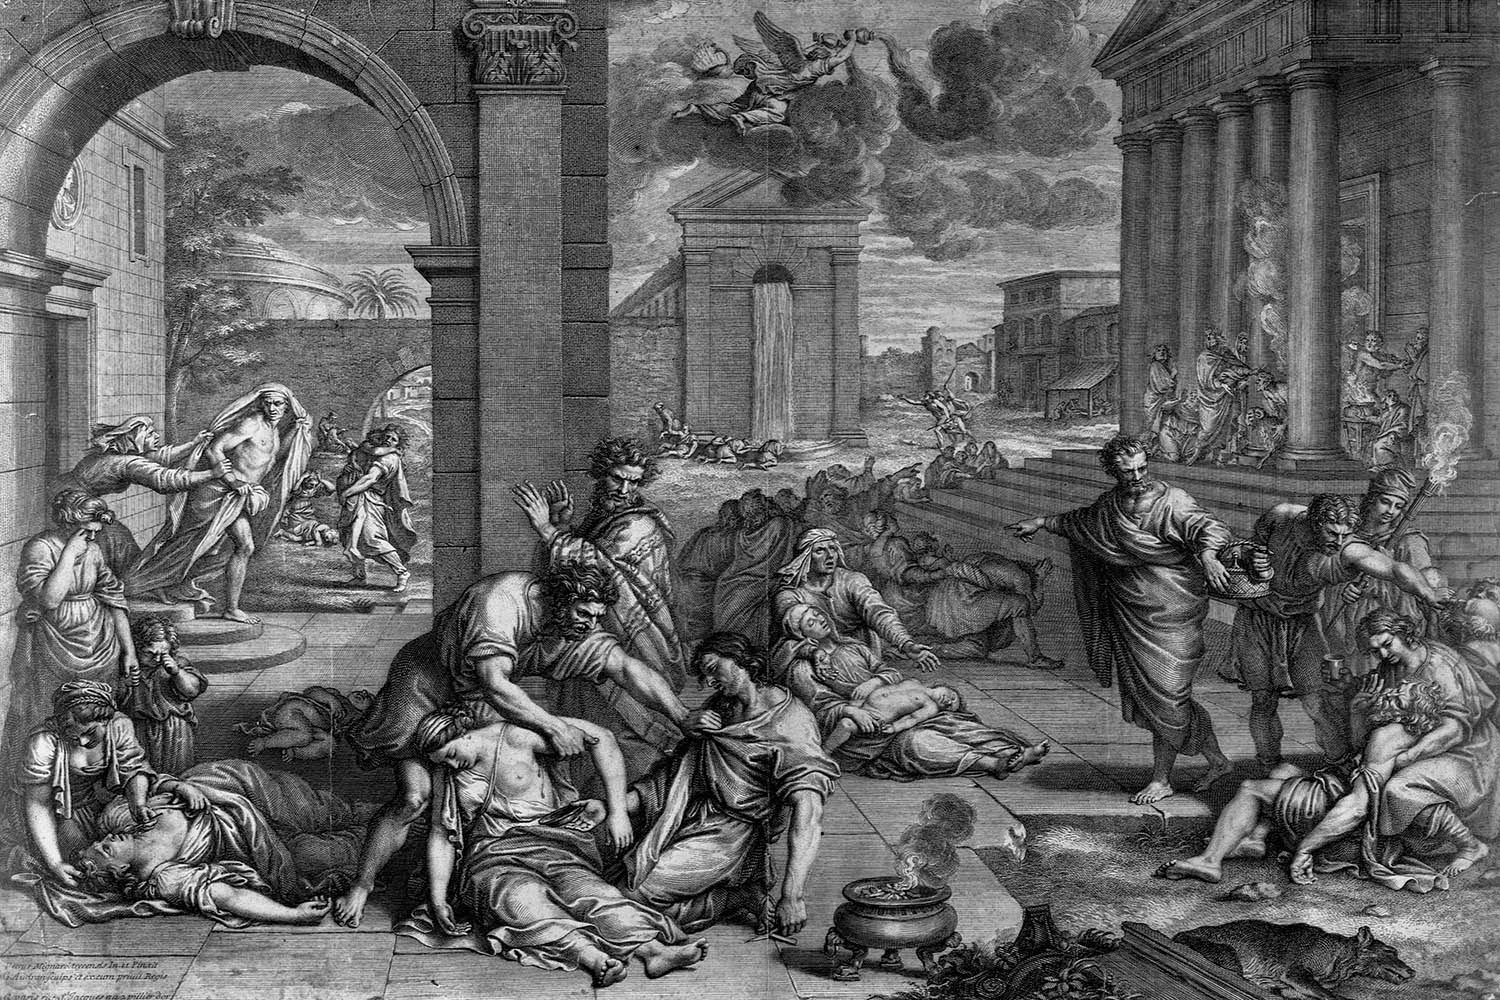 The Coronavirus Is Accelerating Global History Past the Breaking Point